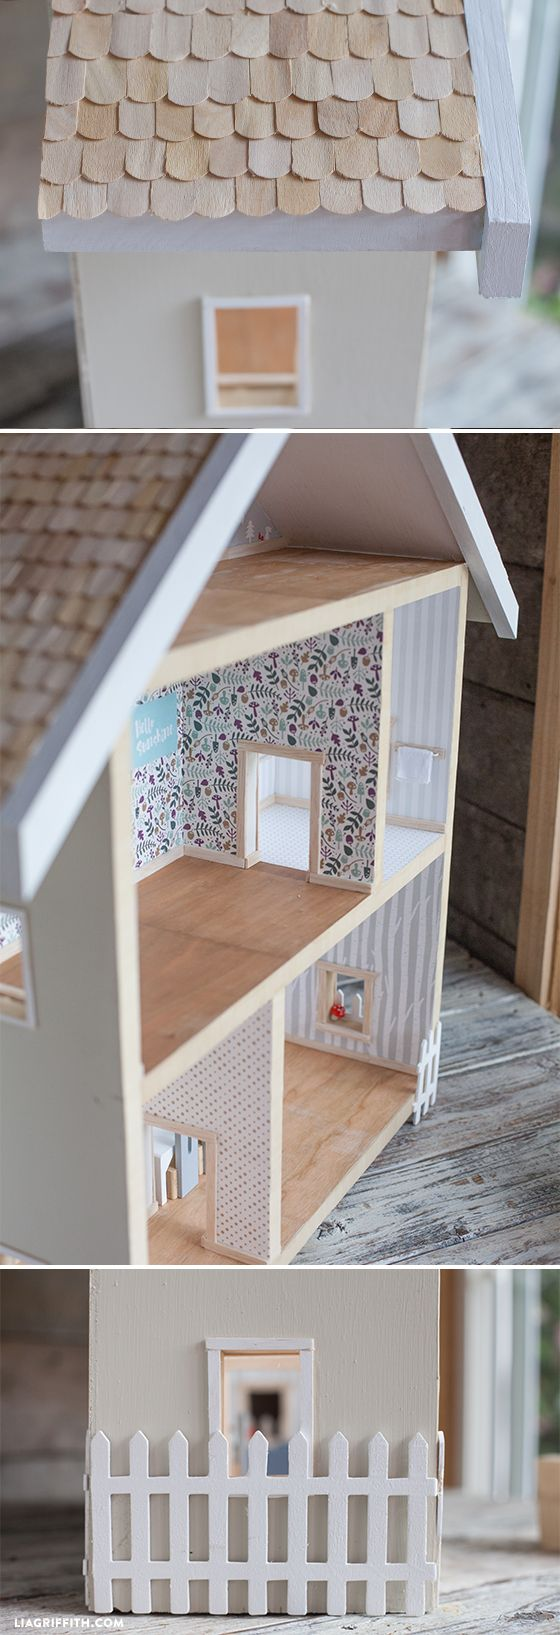 Give A Home - Make Your Own Dollhouse